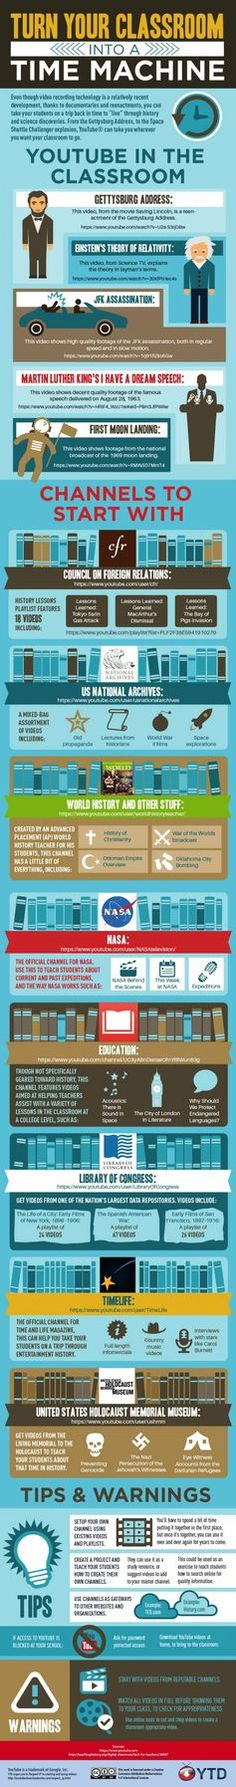 How to turn your classroom into a time machine #history #education #infographic